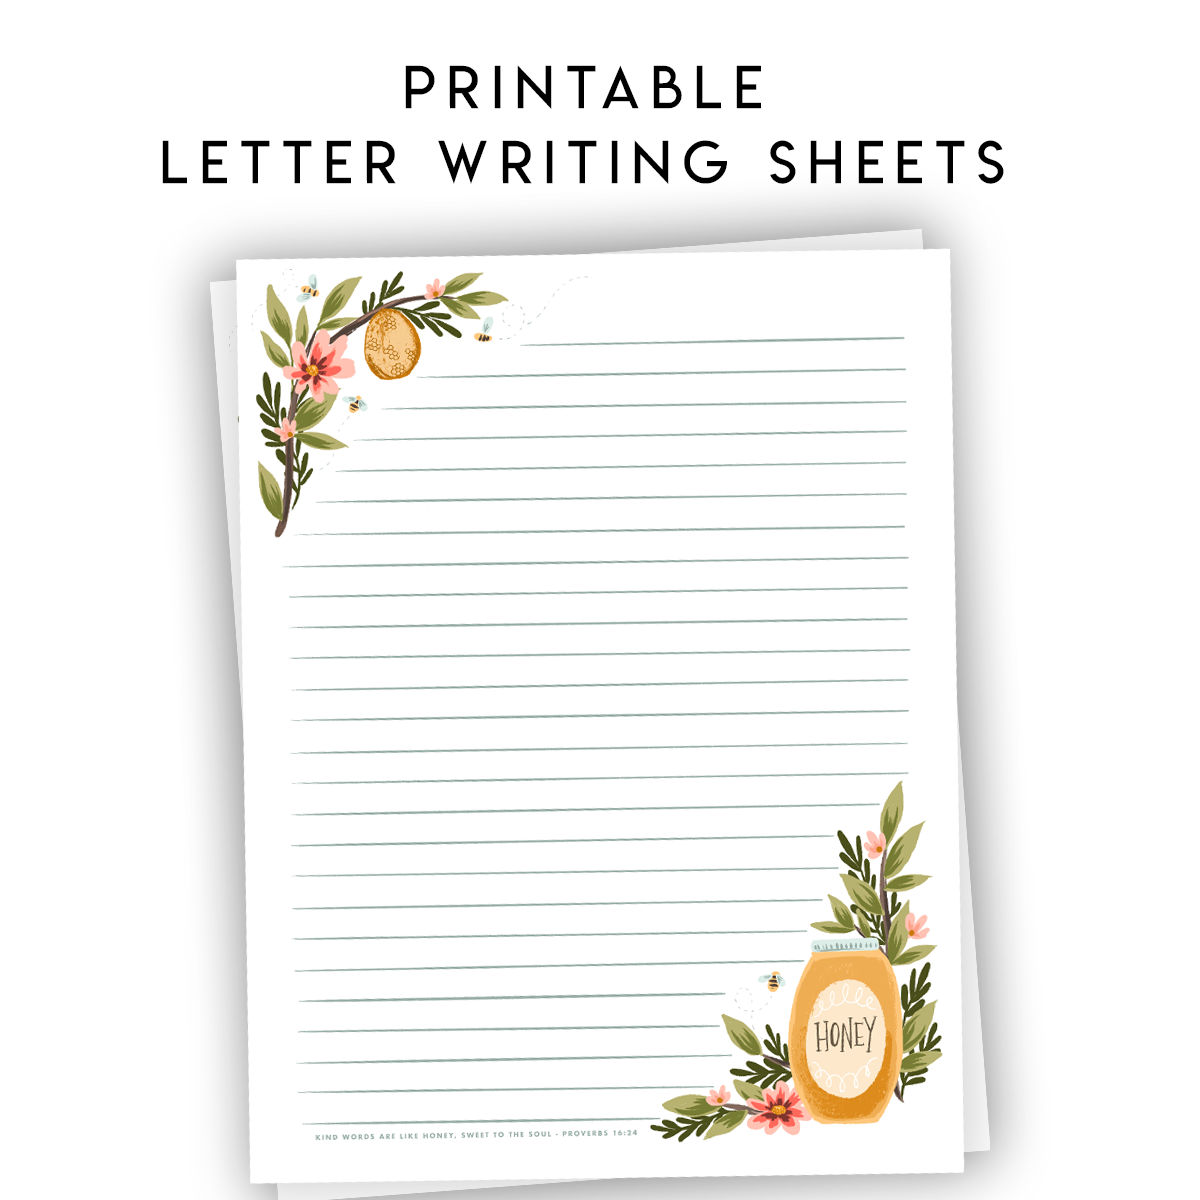 Printable Letter Writing Sheets - Kind Words are Like Honey - Proverbs 16:24